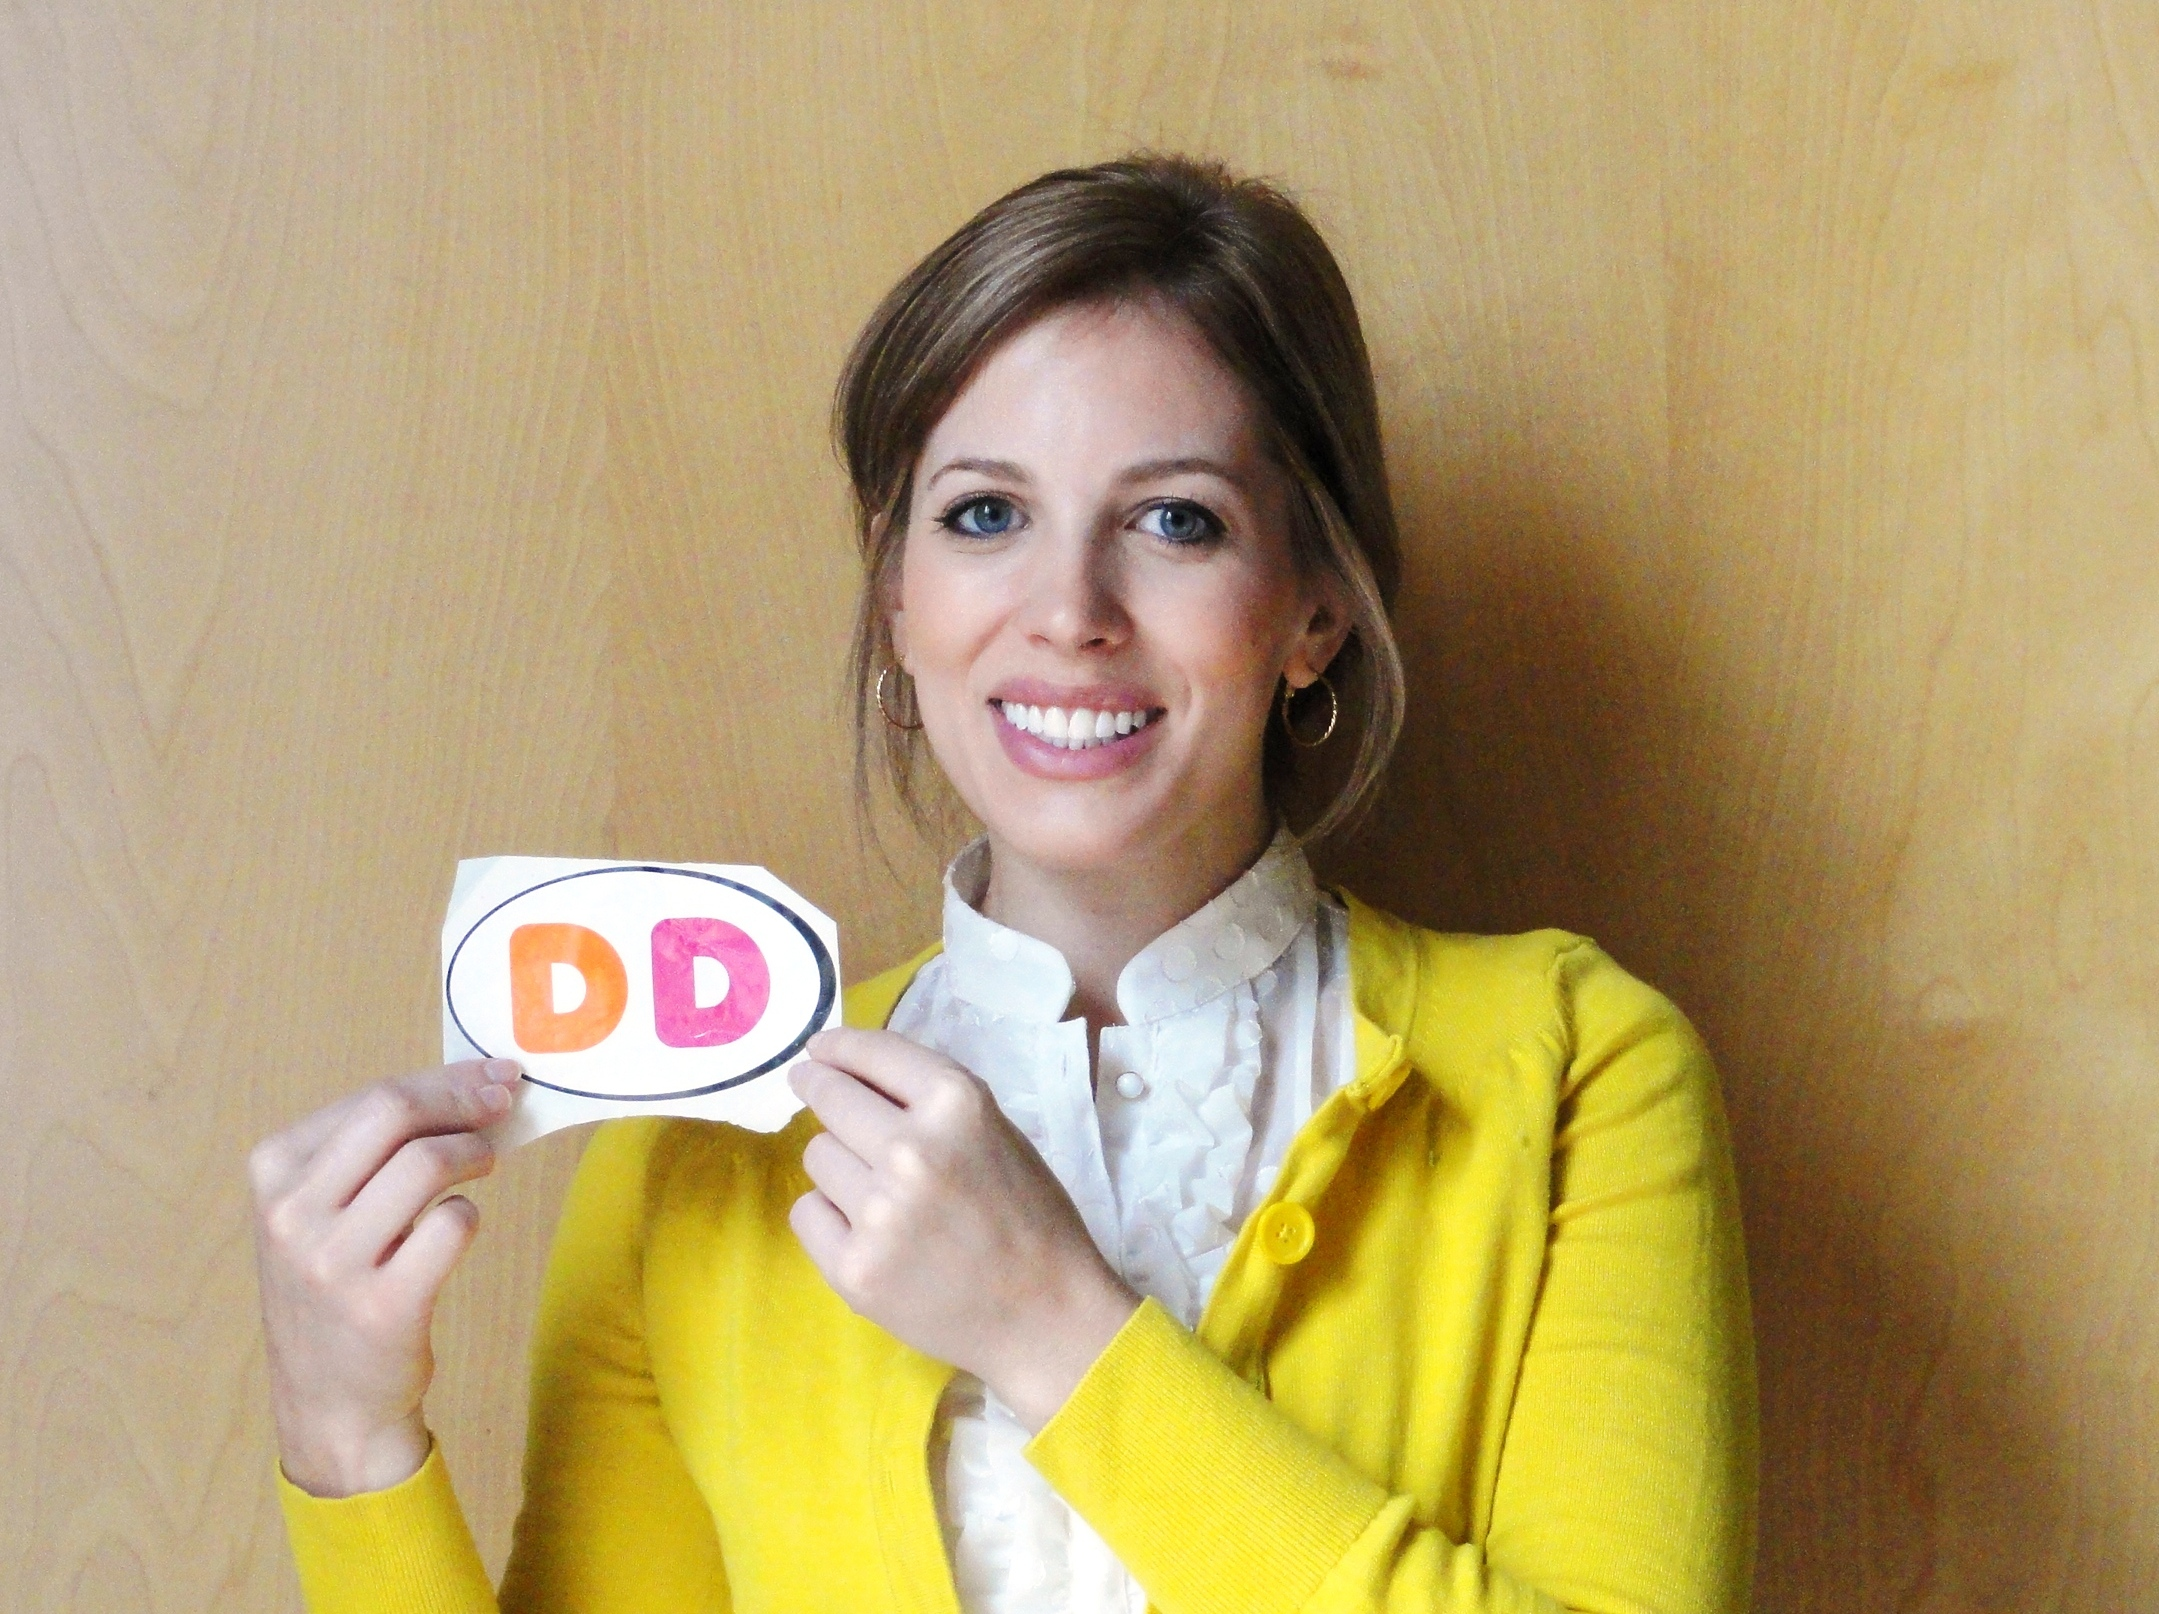 dunkin - Why @DunkinDonuts is a Social Media Rock Star